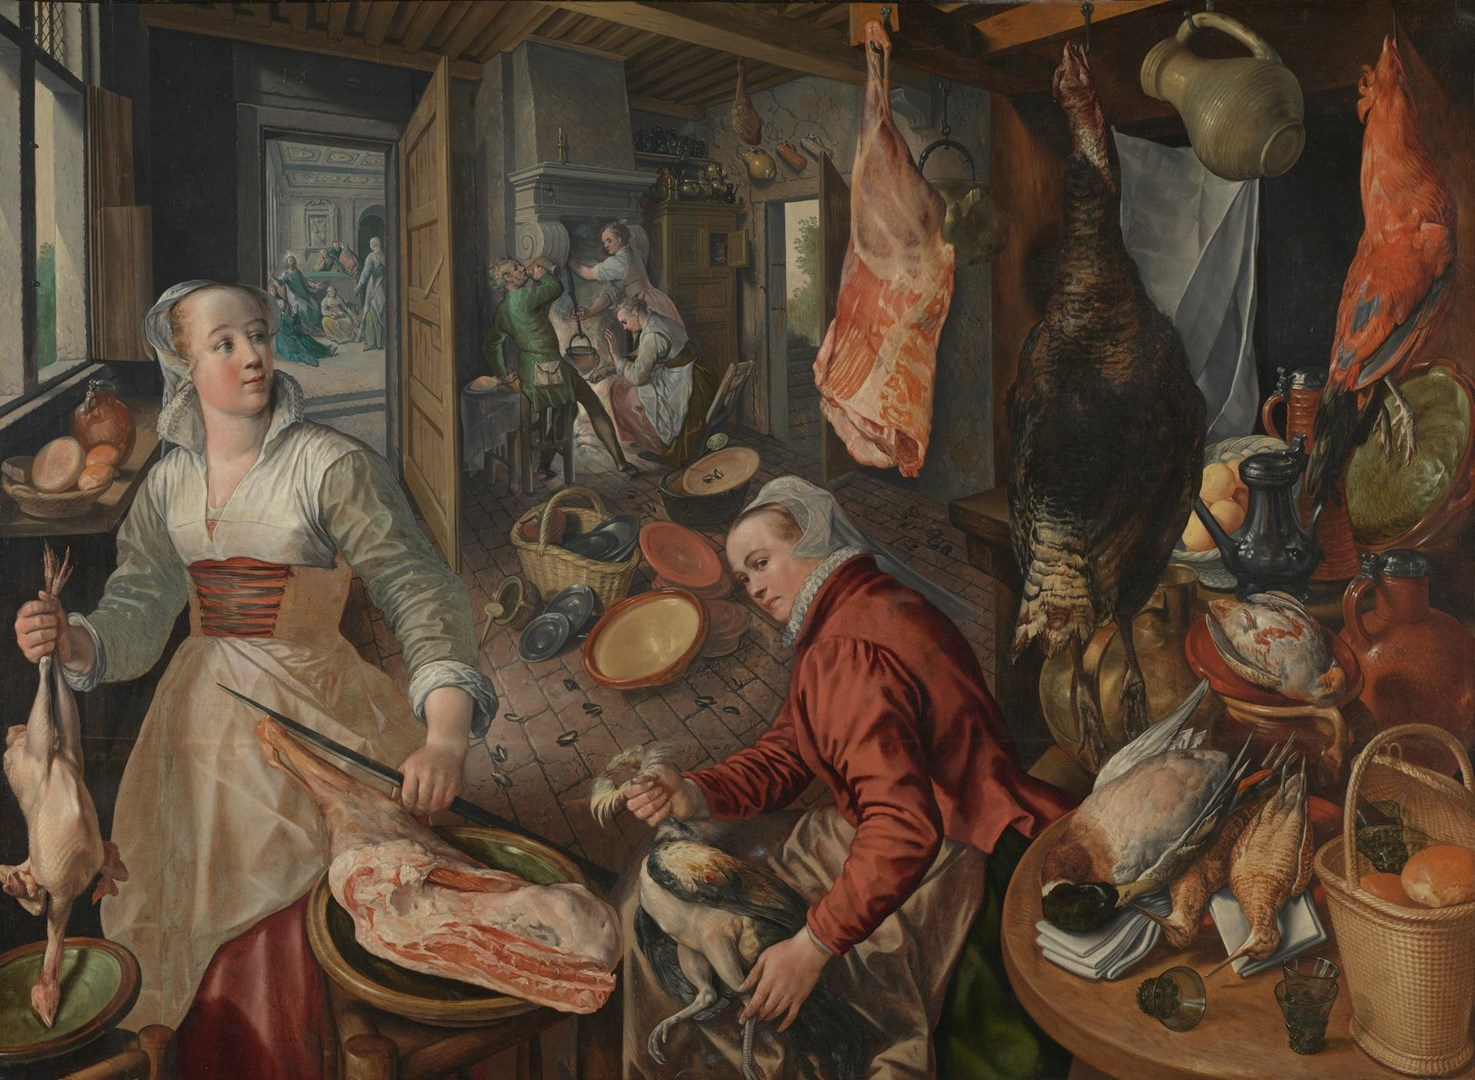 The Four Elements: Fire by Joachim Beuckelaer